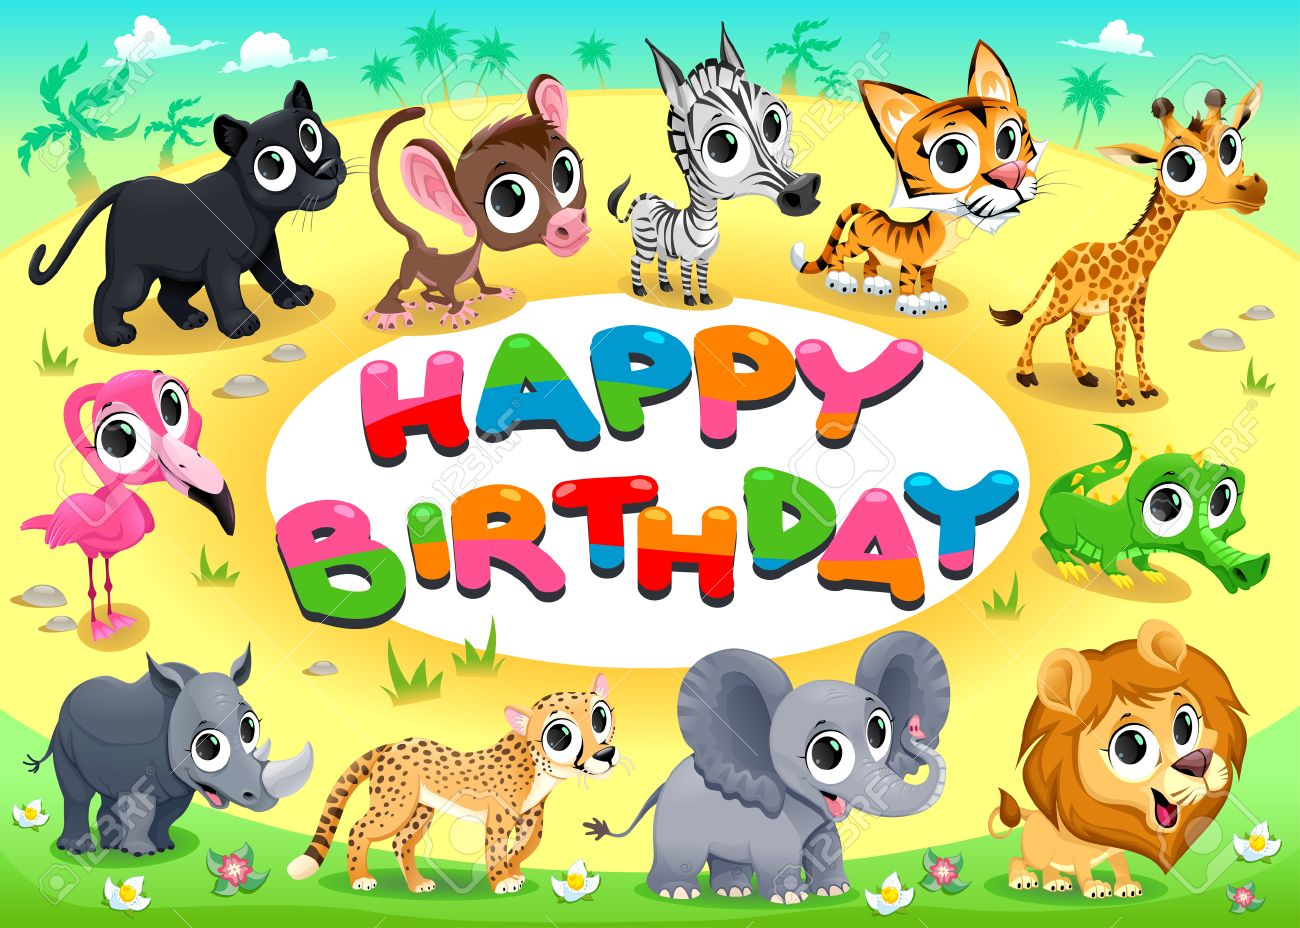 Happy Birthday Card With Jungle Animals Cartoon Vector Illustration Frame In A4 Proportions